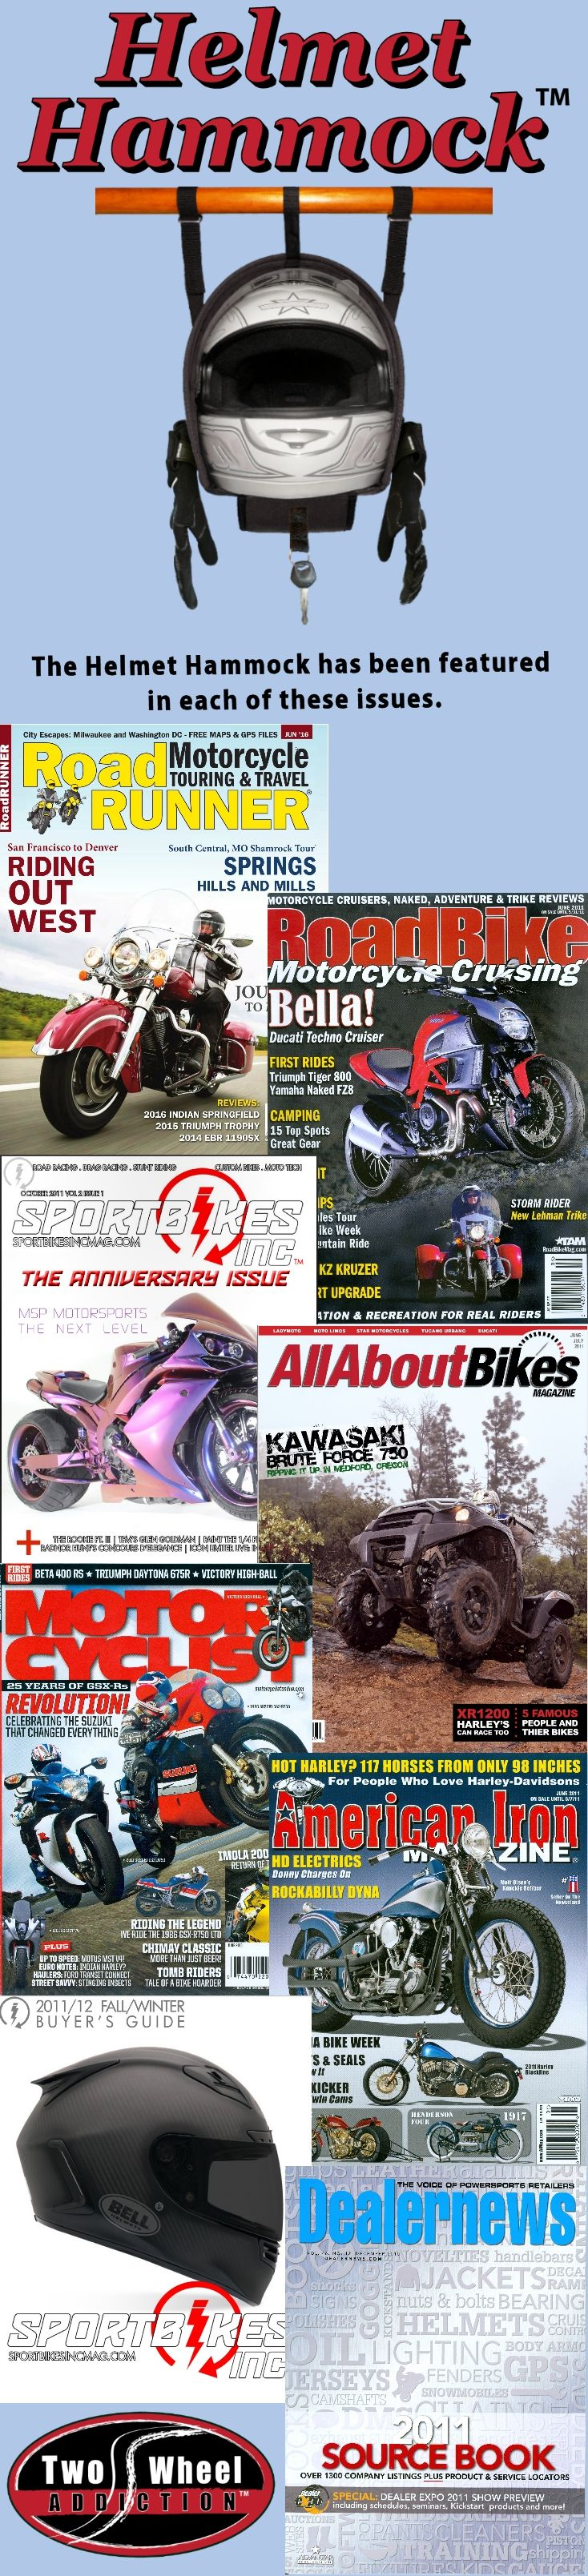 """The Helmet Hammock has been covered in 8 national magazines. Motorcyclist magazine selected it as """"Best of Indy"""" and Road Bike magazine selected it as one the """"Hot Products"""" unveiled at Dealer Expo (Motorcycle Industry Tradeshow) in 2011."""